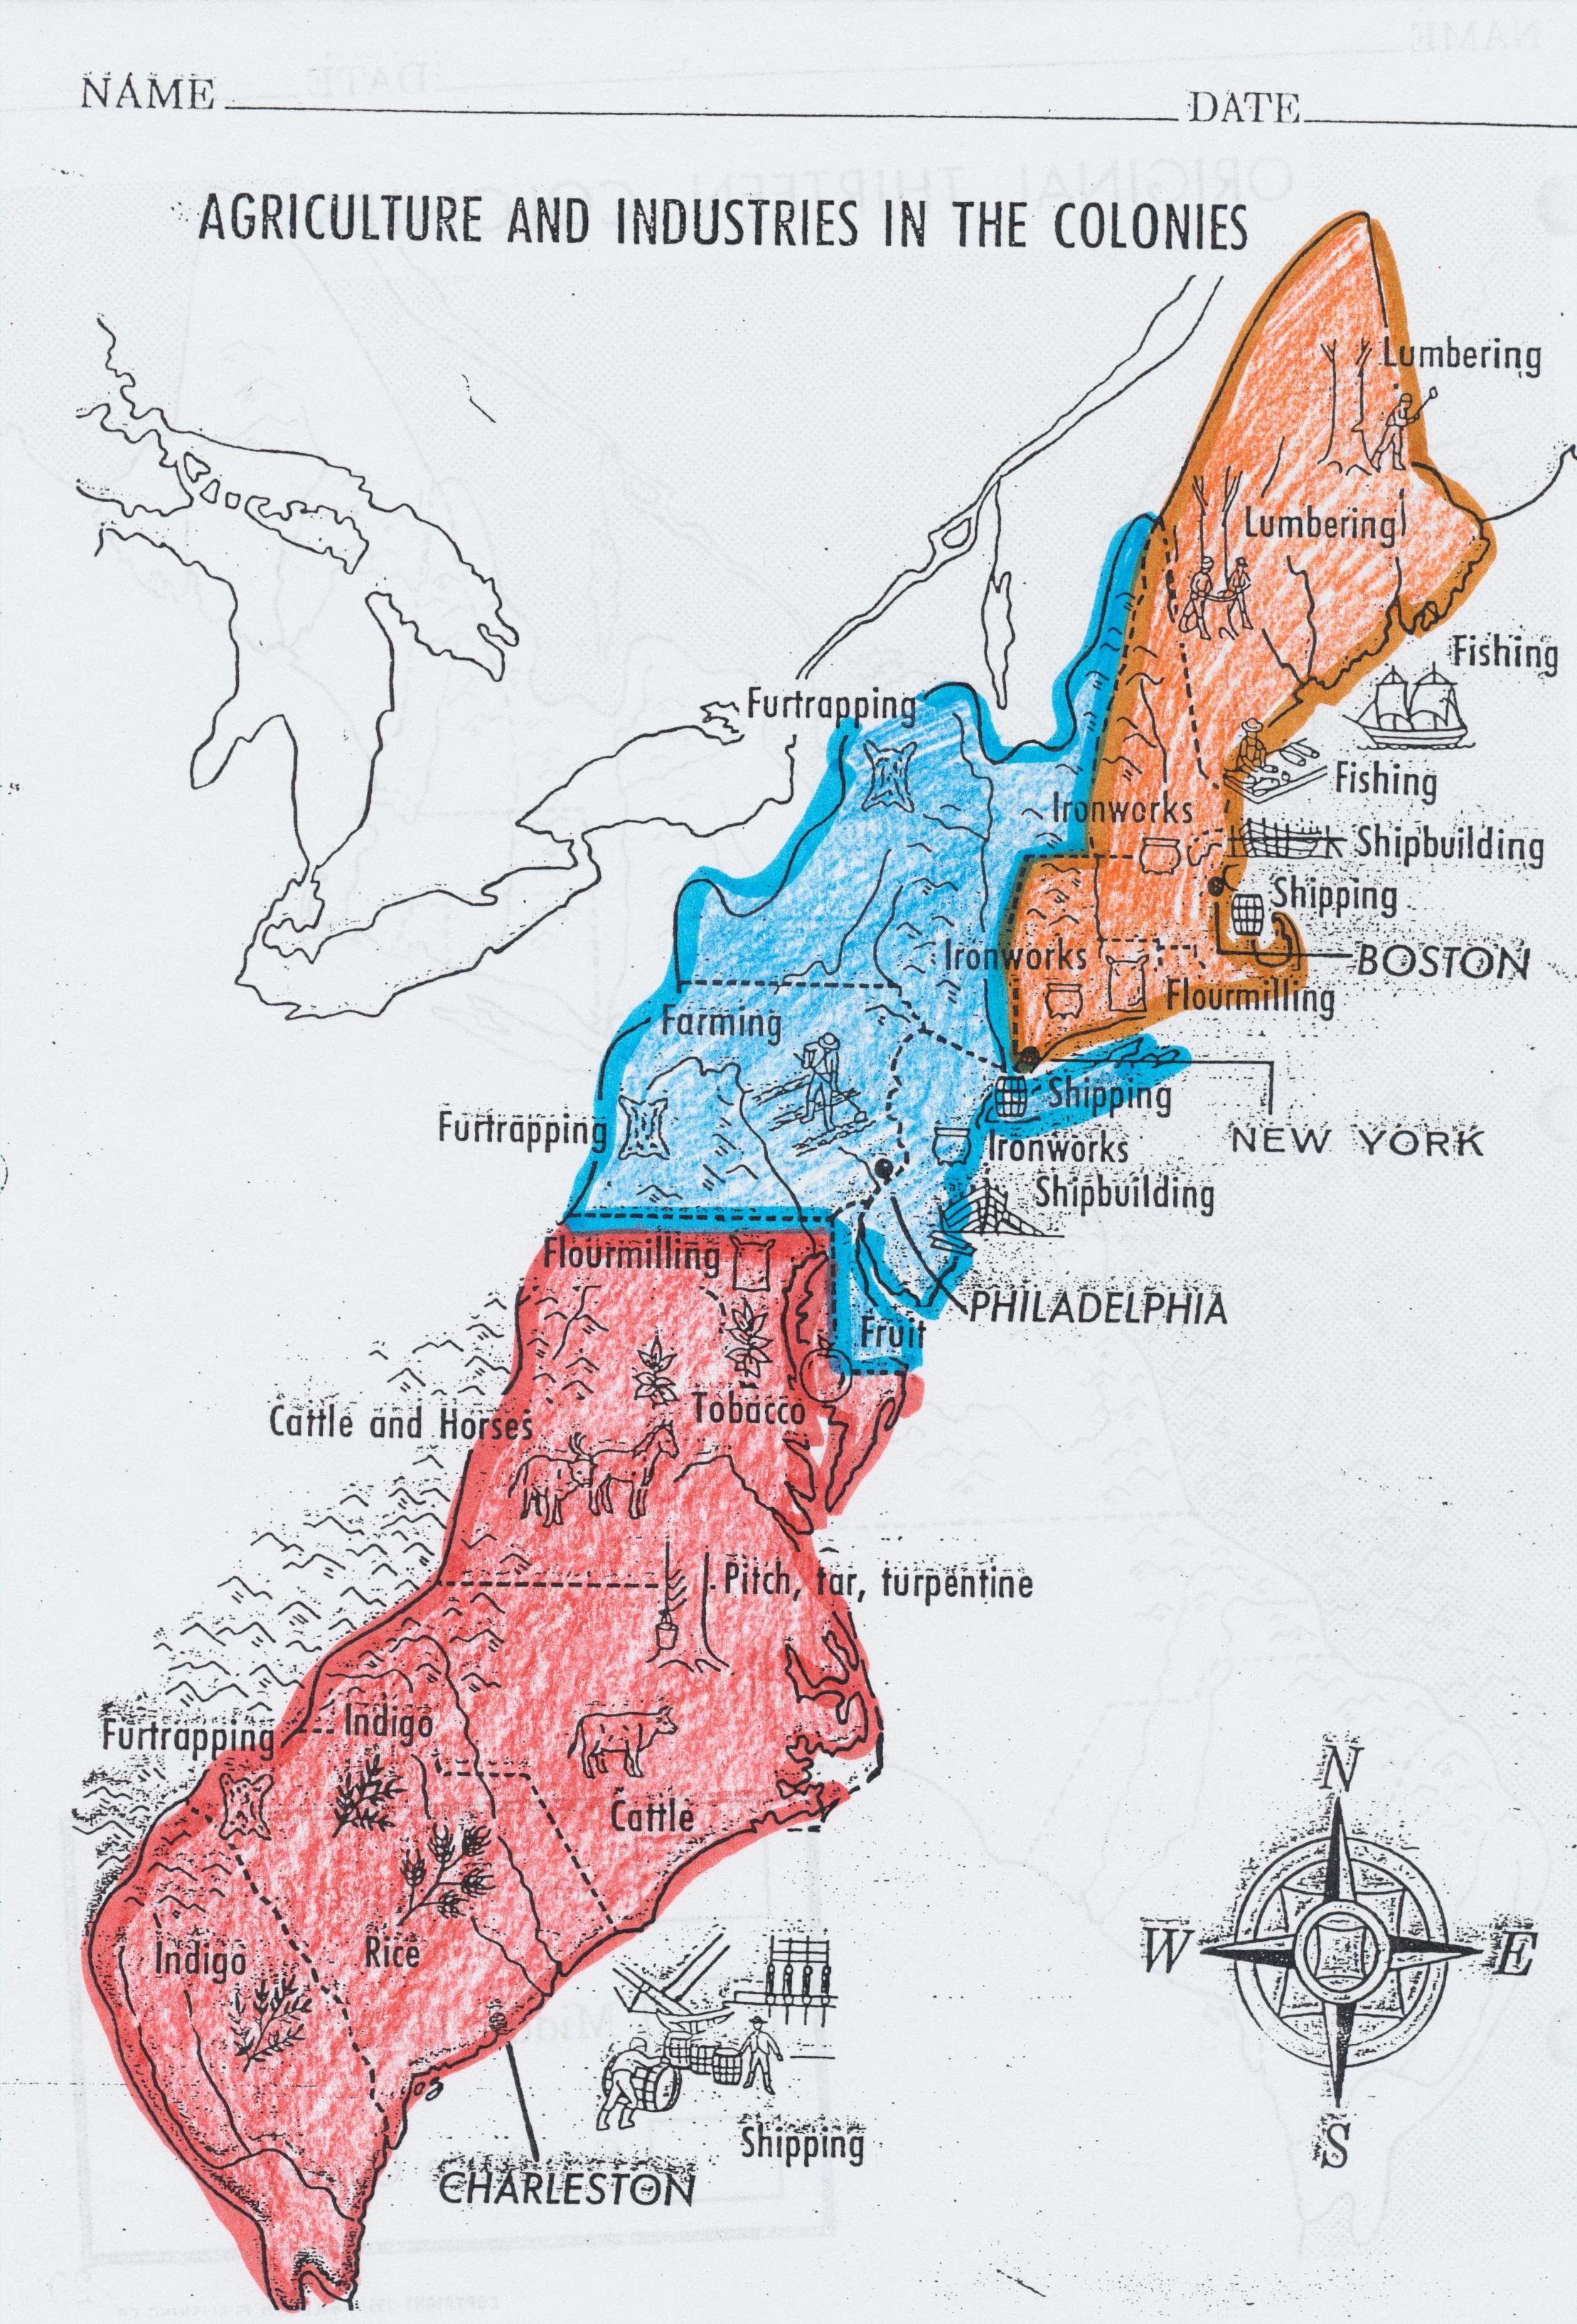 social studies mrs curley attachments 13 colonies resources in color 001 jpg